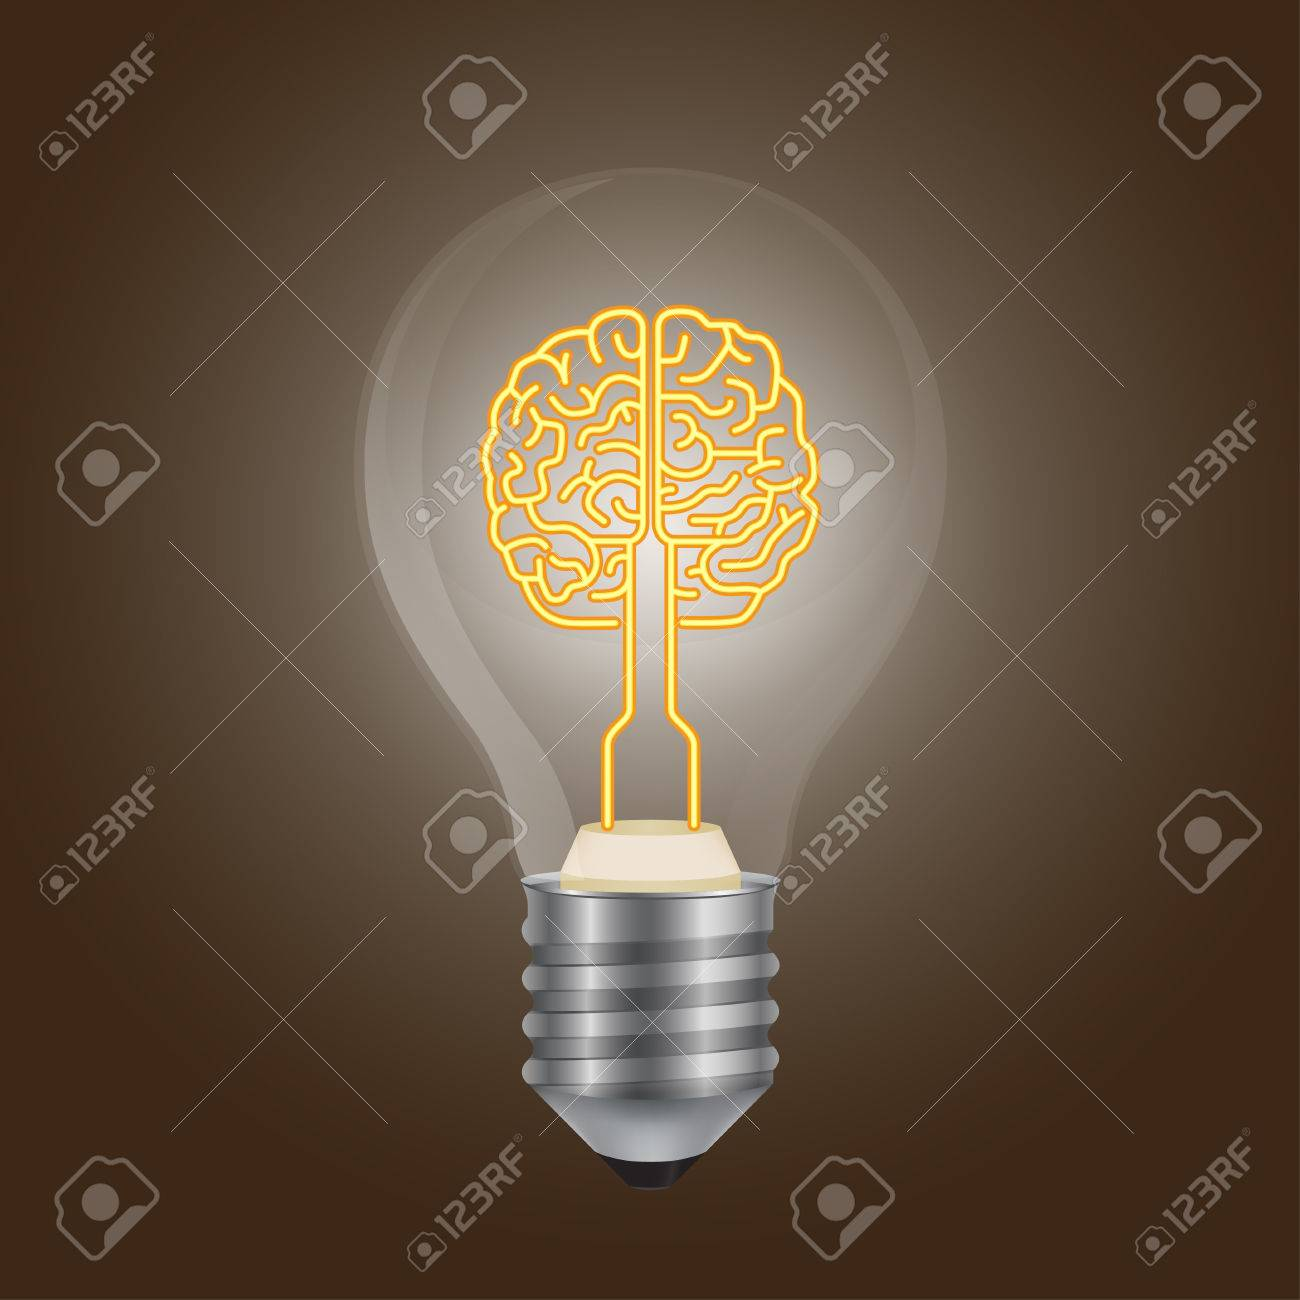 Brain Lamp Royalty Free Cliparts, Vectors, And Stock Illustration ...